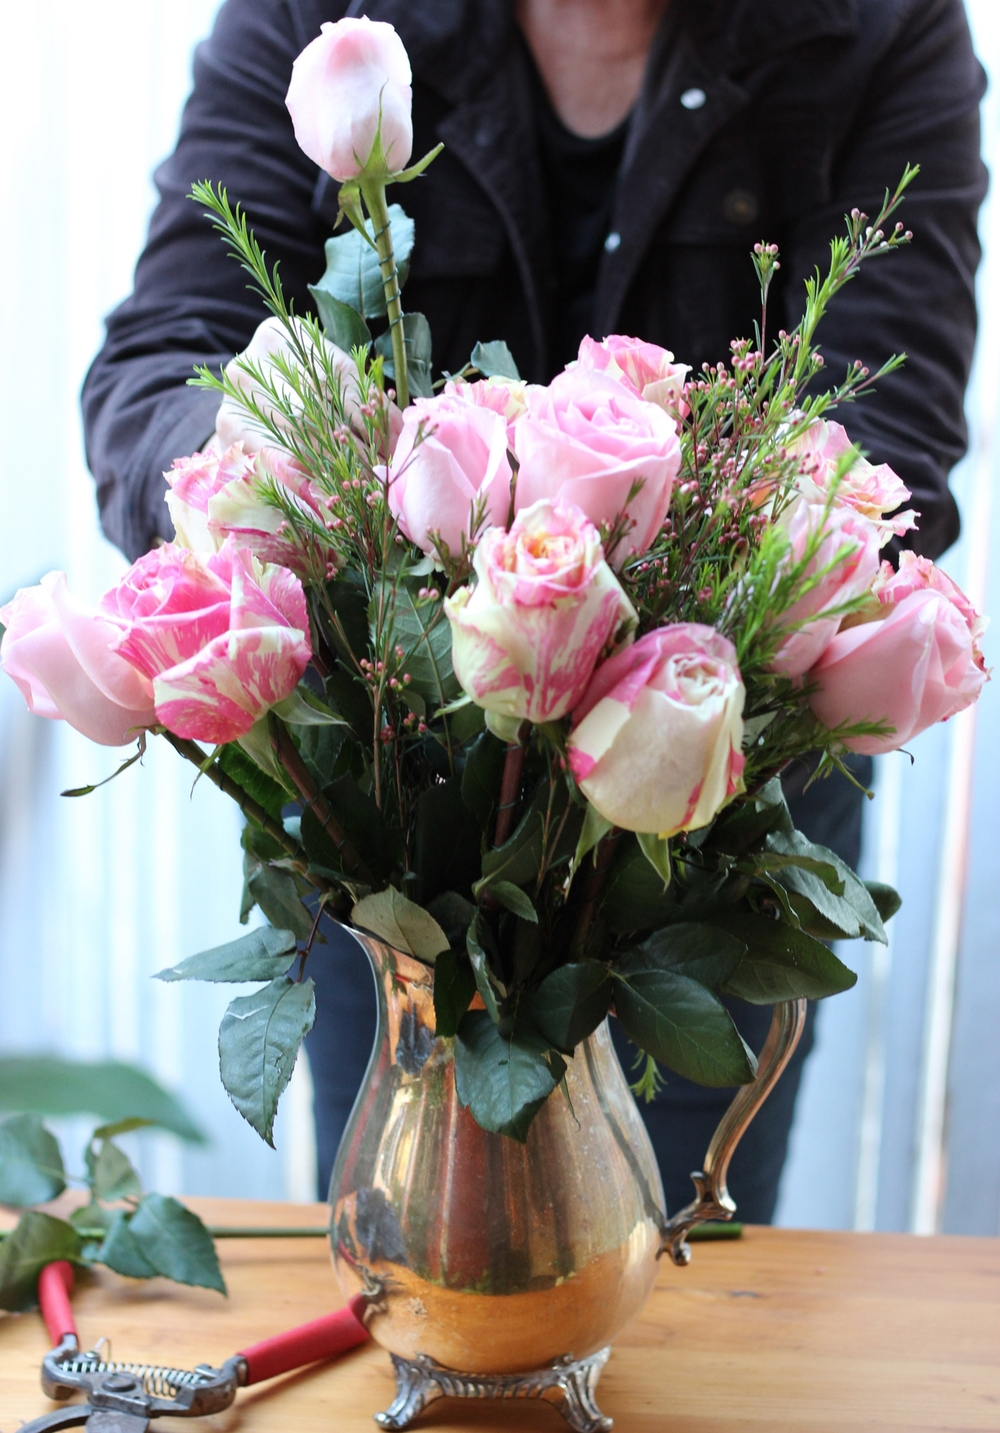 Next, add the all pink roses to create a full bouquet.